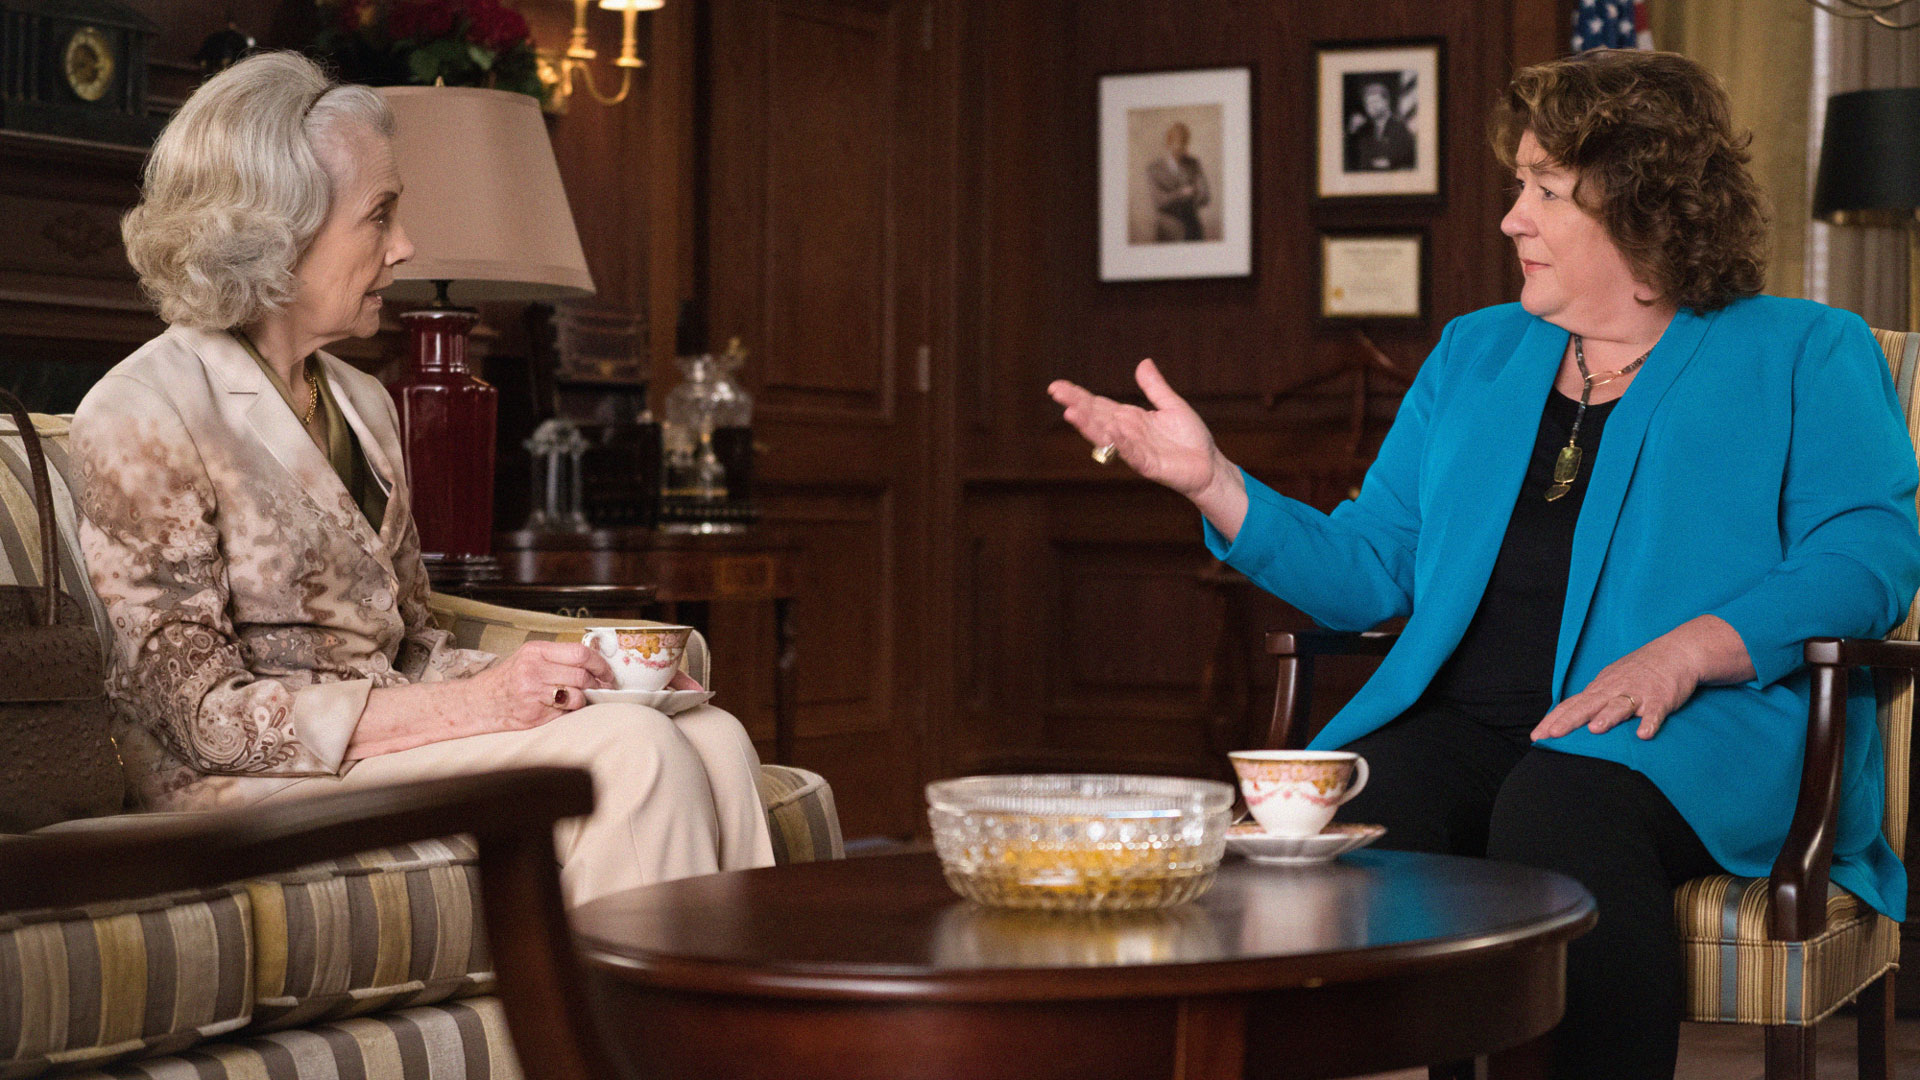 Mary Beth Peil as Jackie Florrick and Margo Martindale as Ruth Eastman